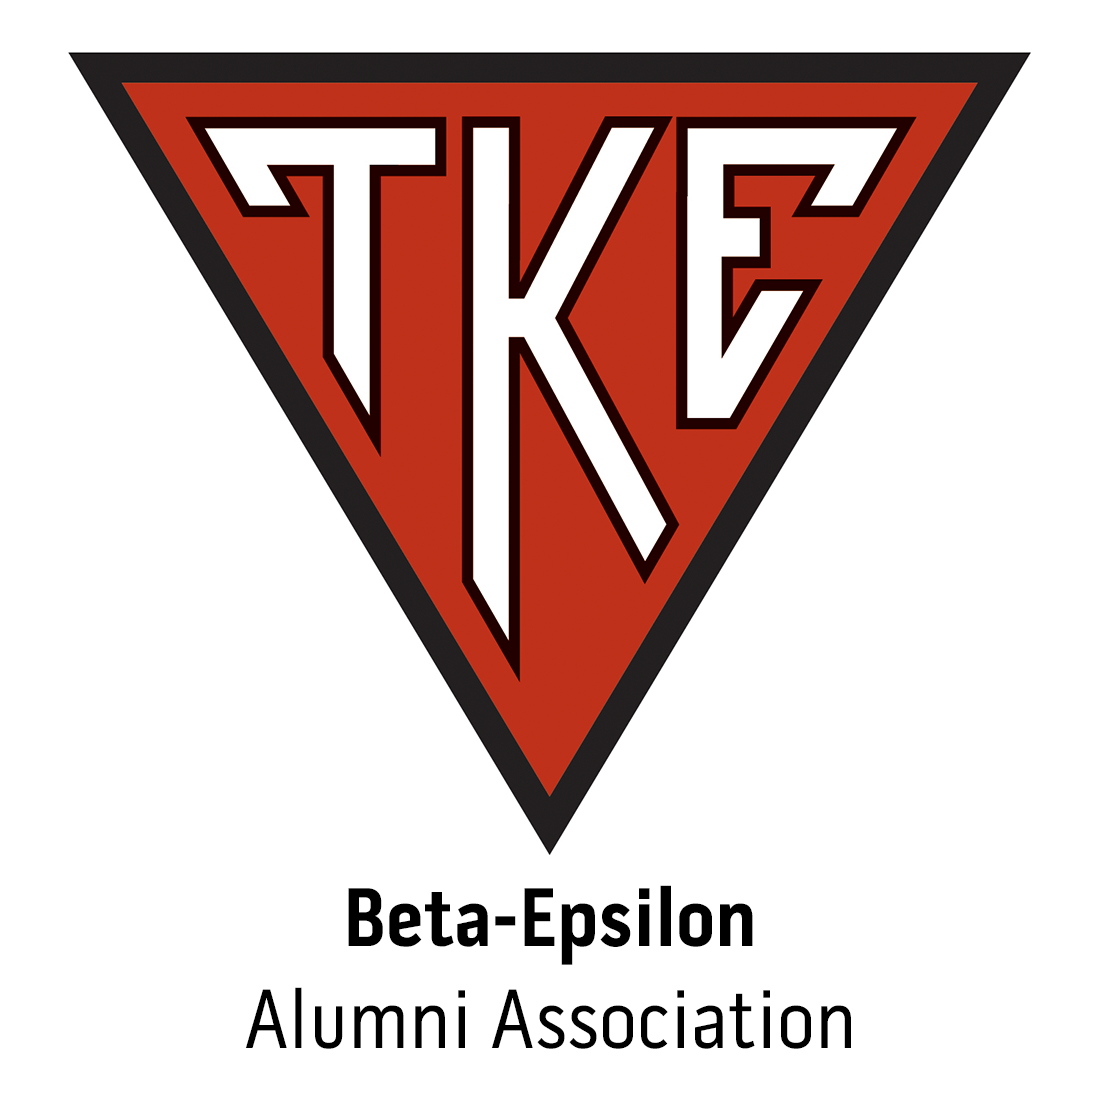 Beta-Epsilon Alumni Association Alumni at Trine University